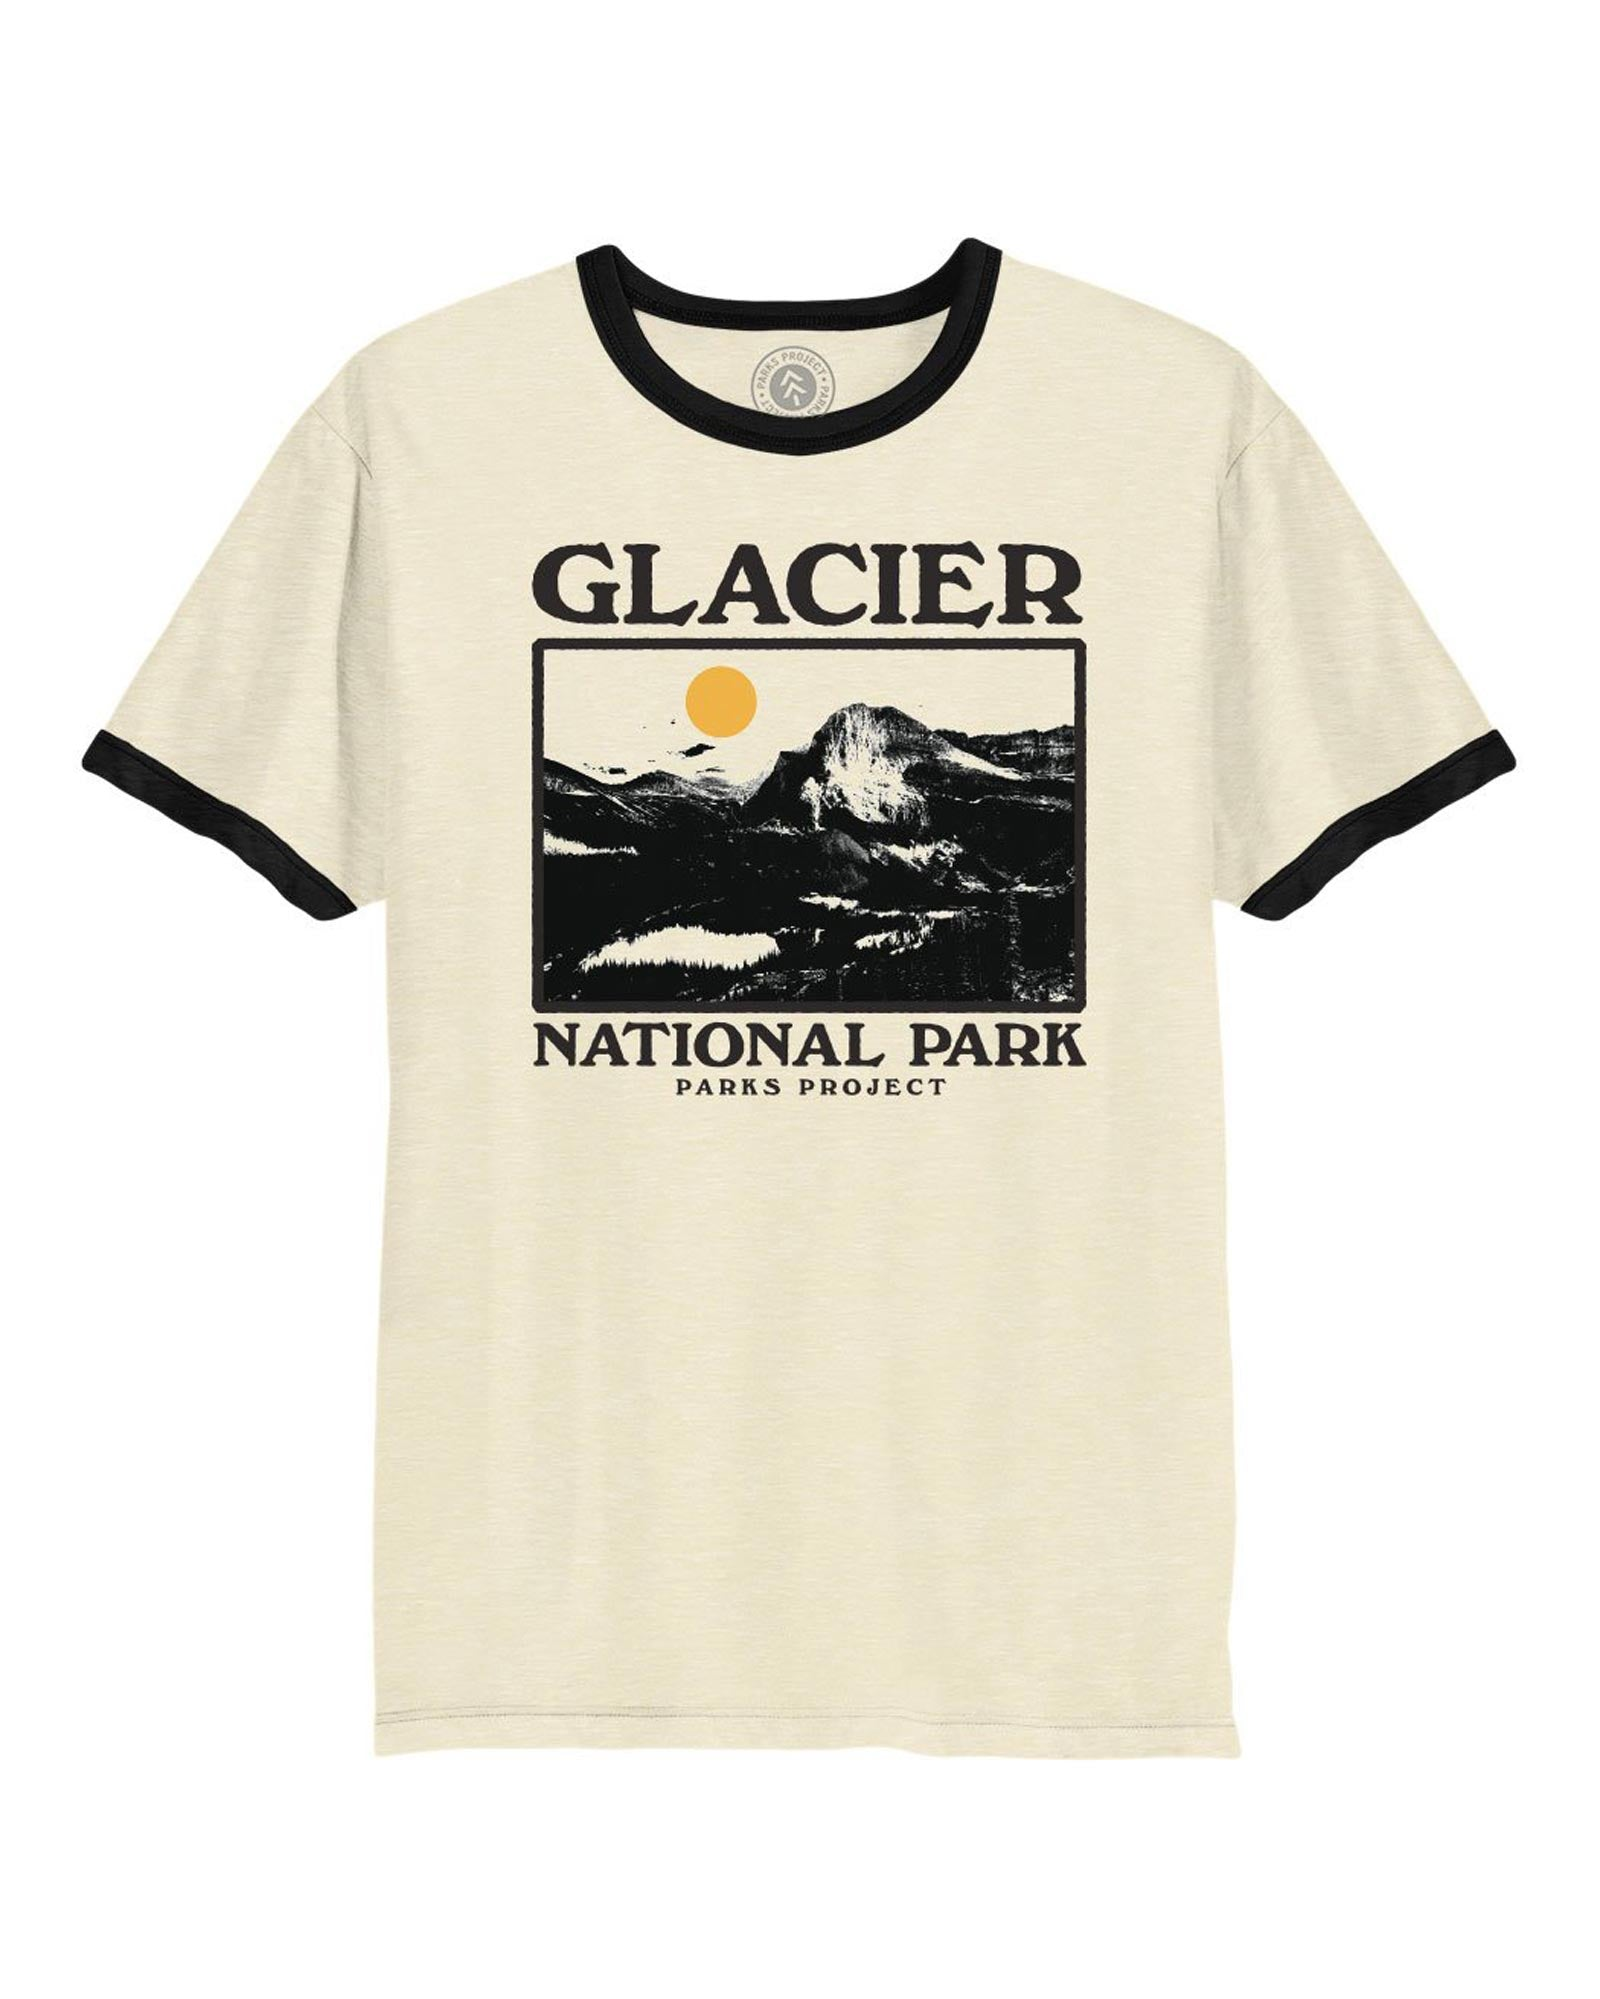 Glacier Photo Ringer Tee | Parks Project | National Park Vintage Ringers